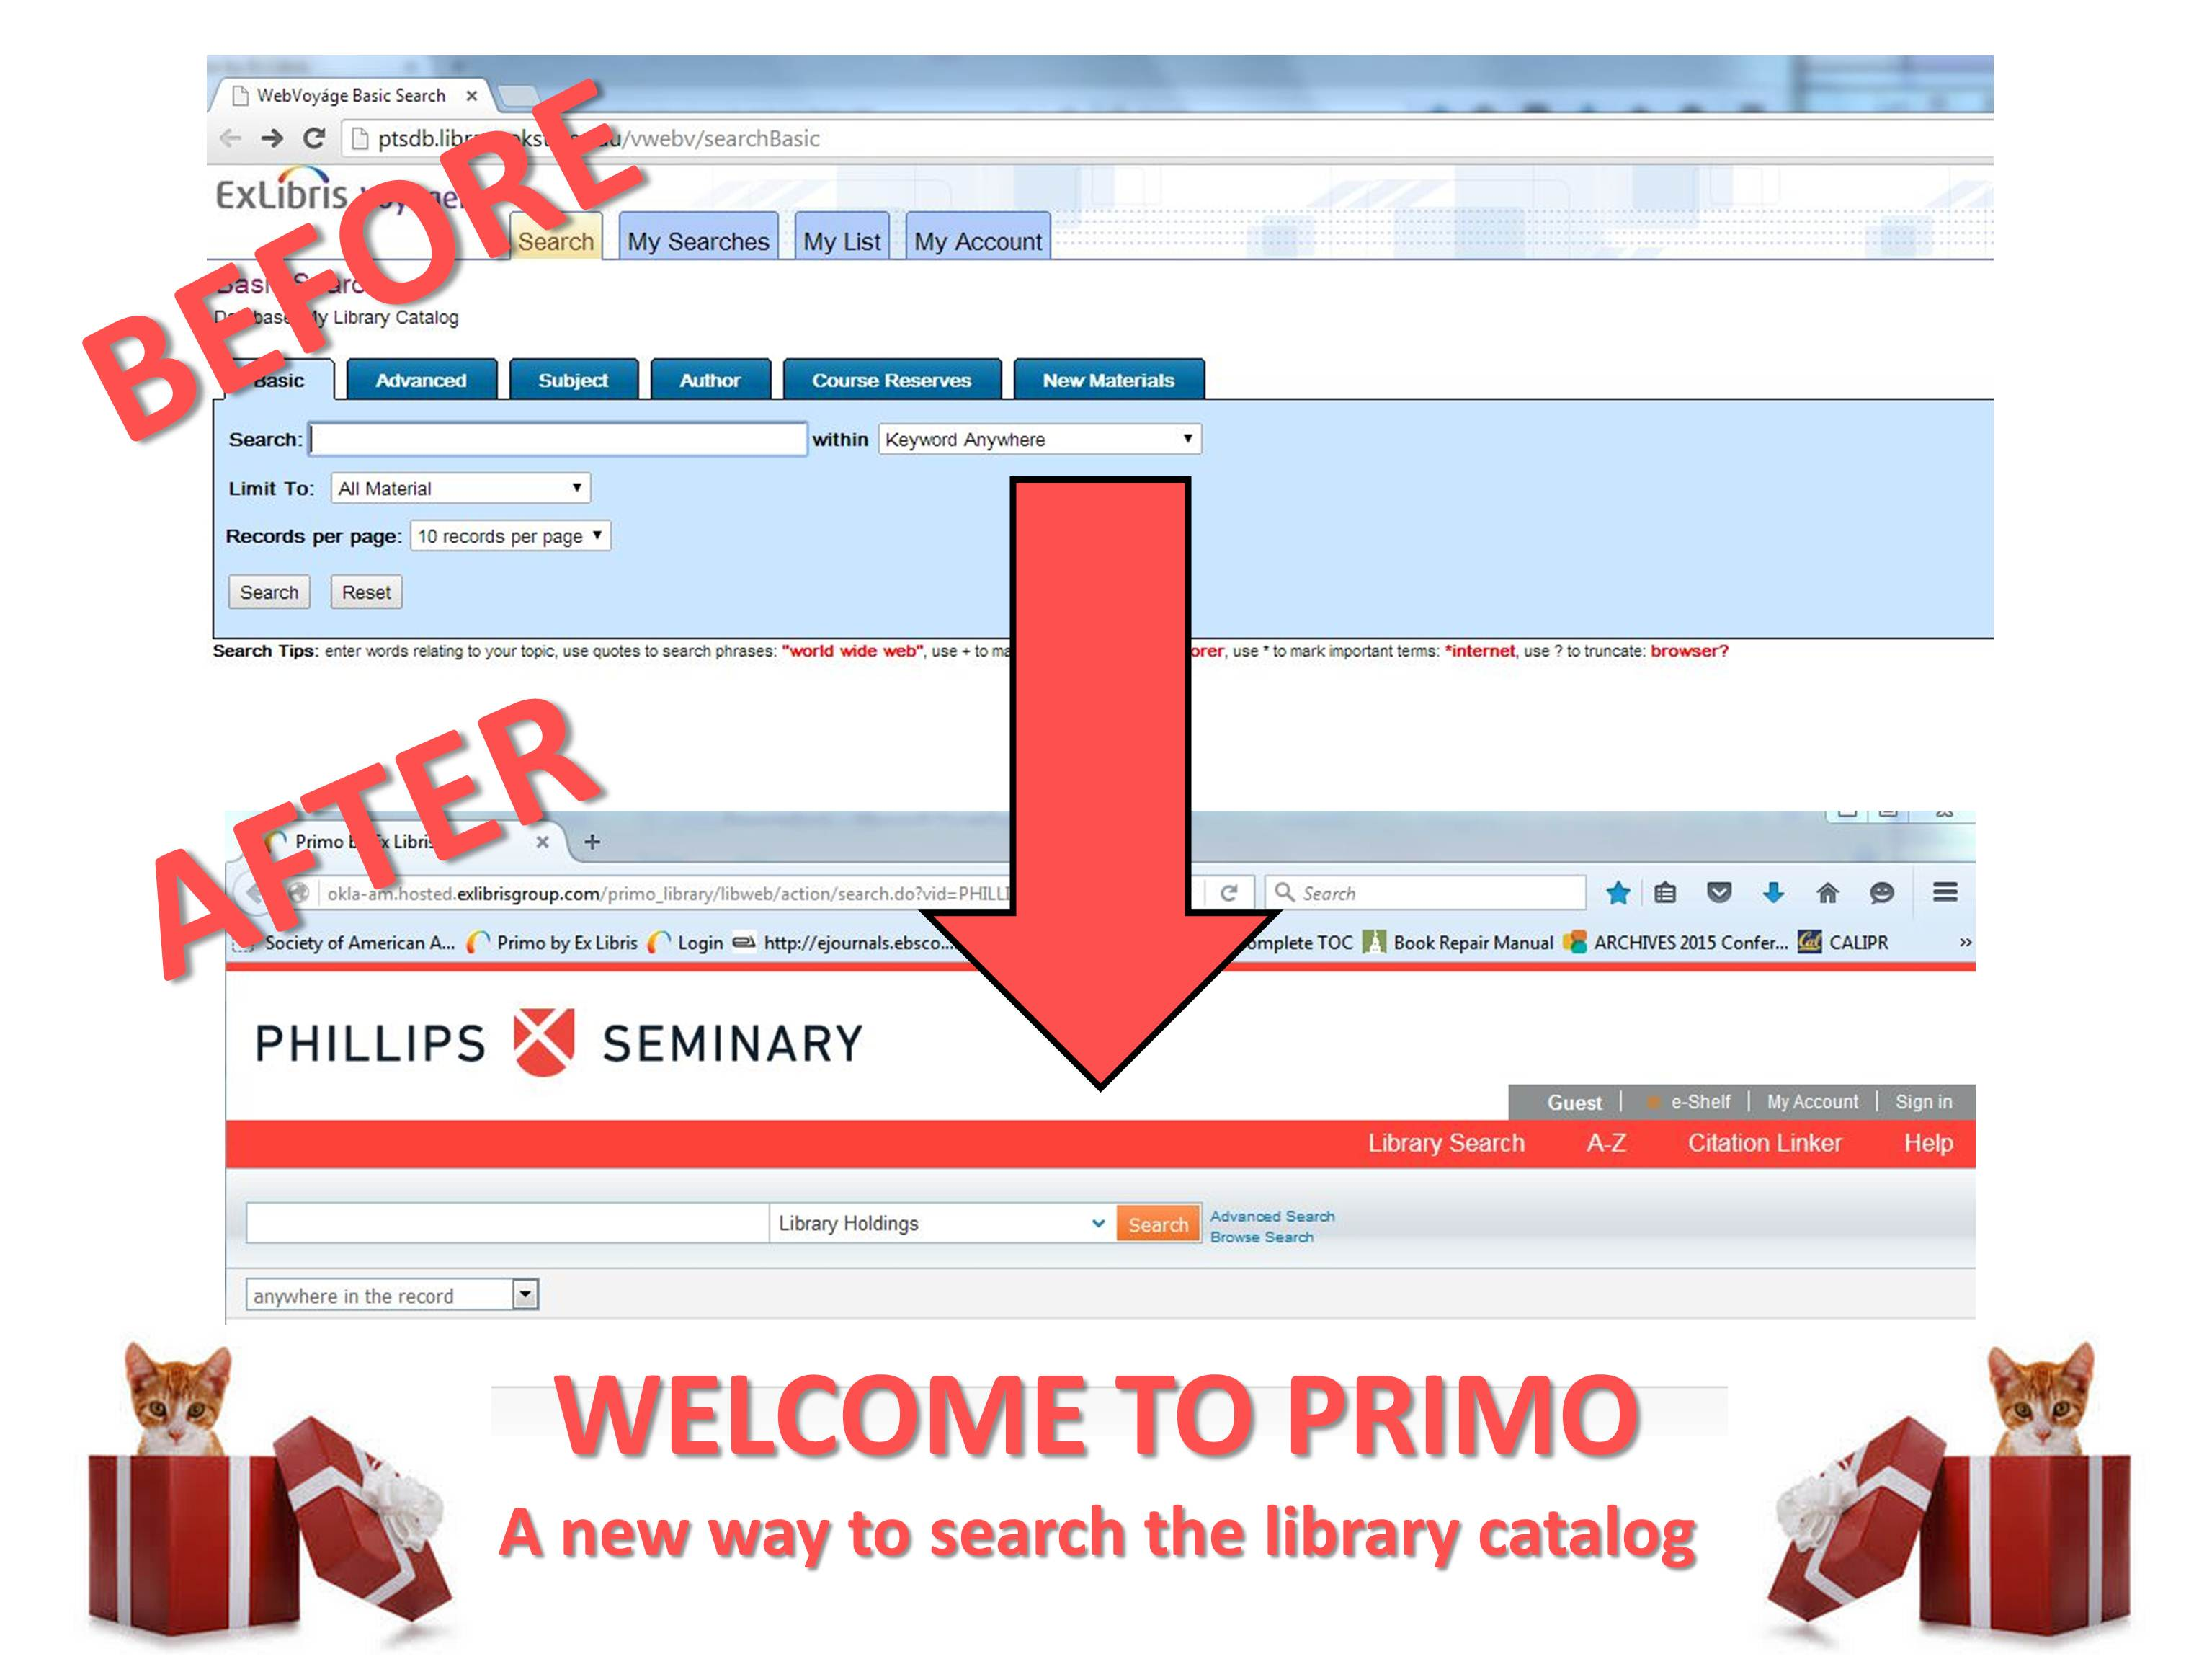 Primo example images